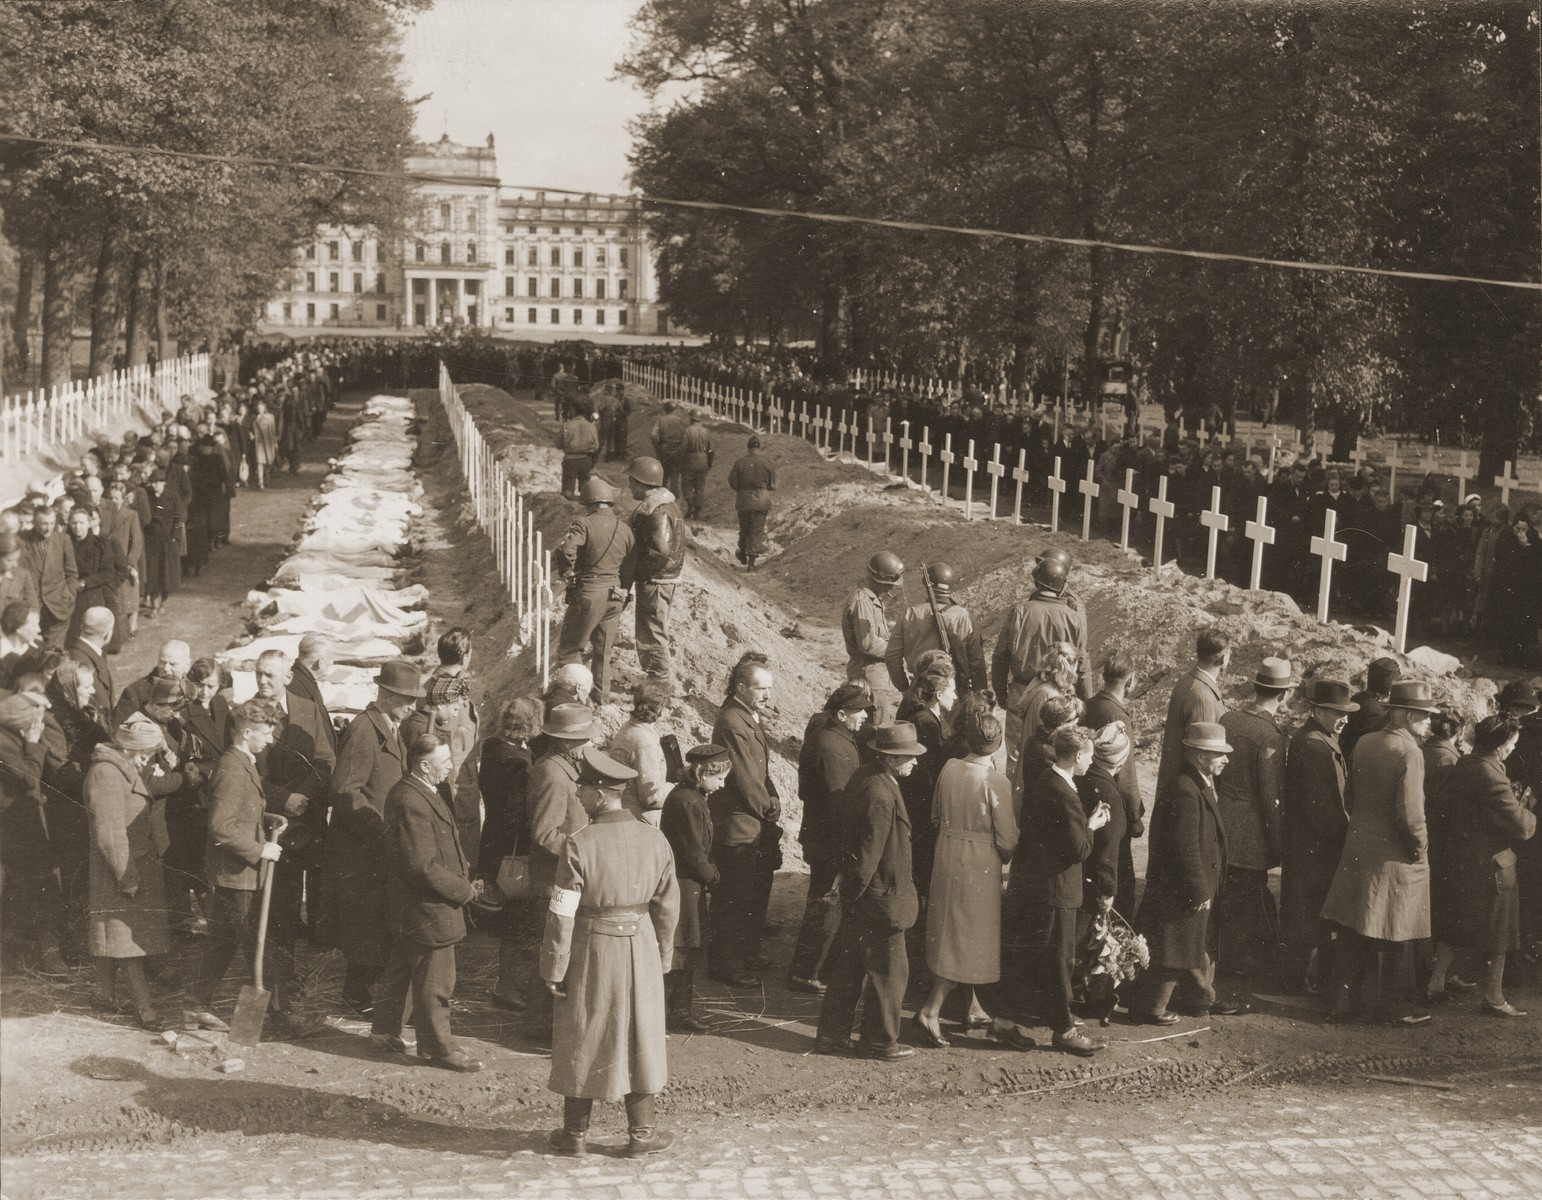 German civilians from Ludwigslust file past the corpses and graves of 200 prisoners from the nearby concentration camp of Woebbelin.  The townspeople were forced by U.S. troops to bury the corpses on the palace grounds of the Archduke of Mecklenburg.  A sub-camp of Neuengamme, Woebbelin was captured by British and American troops on 4 May 1945.  Upon entering the camp, the liberators discovered nearly 4,000 prisoners, one-quarter of whom were already dead.  Outraged by what they found, the ranking Allied commanders in the area forced civilians from the nearby towns of Schwerin, Hagenow, and Ludwigslust to first see Woebbelin and then bury the bodies of prisoners in their towns.  The largest number of bodies, ca. 200, was buried in Ludwigslust on the palace grounds of the Archduke of Mecklenburg.  A slightly smaller number was buried in the garden of the leading Nazi official in Hagenow and 80 bodies were interred in Schwerin.  Every fourth grave was marked at each site with a Star of David in honor of the unidentified Jewish dead.